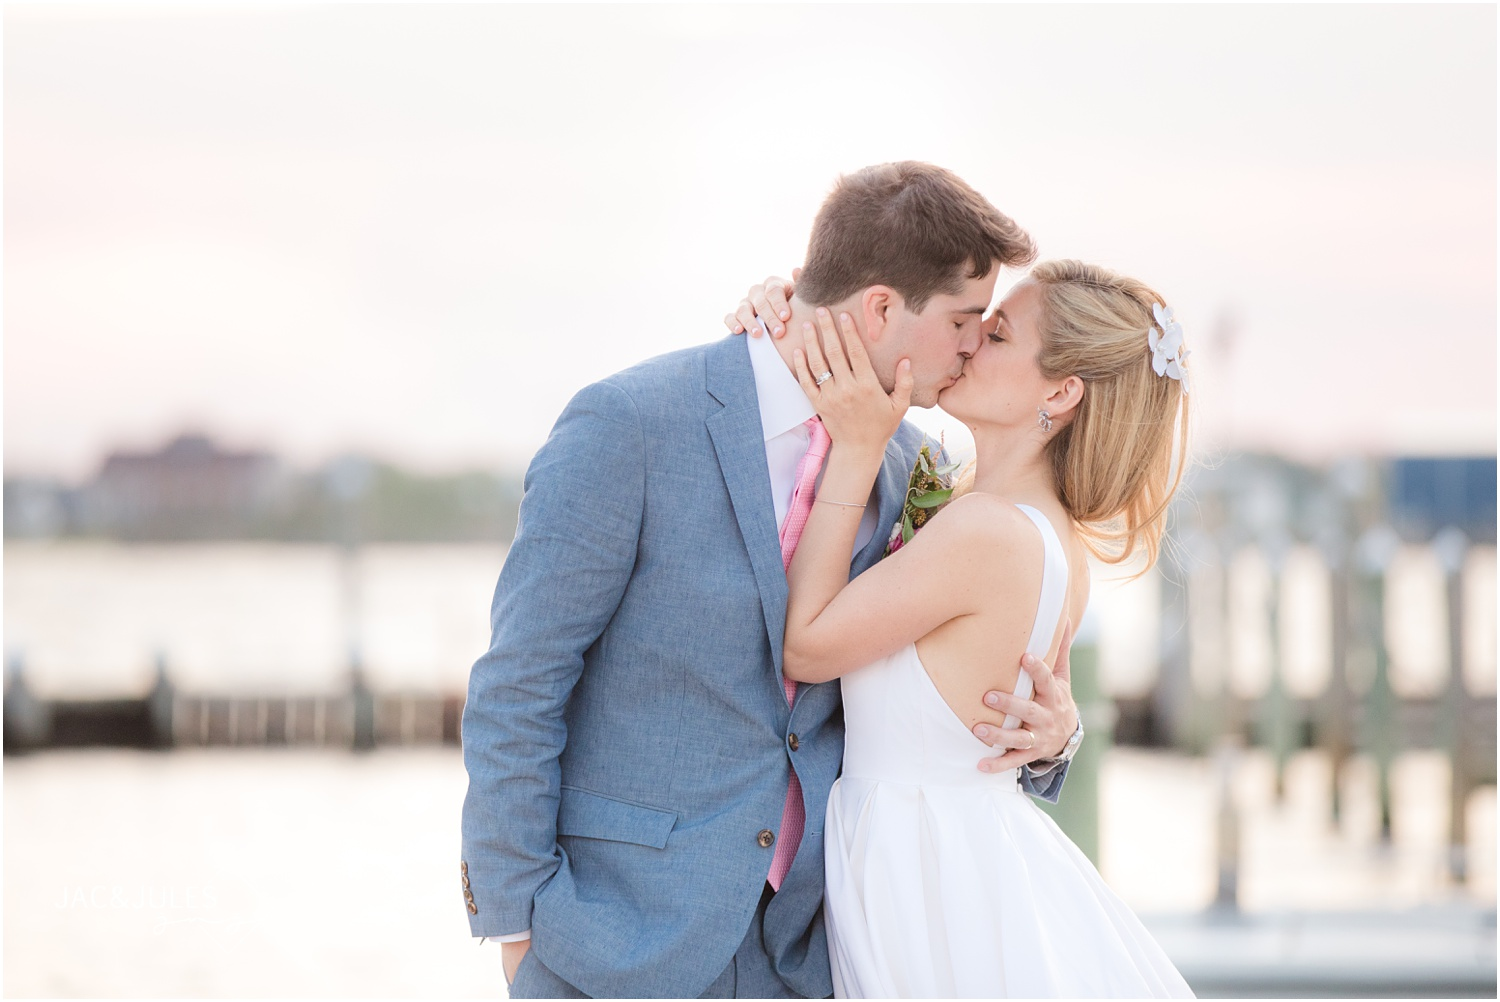 Wedding photo of couple kissing on the dock at sunset in Mantoloking, NJ.